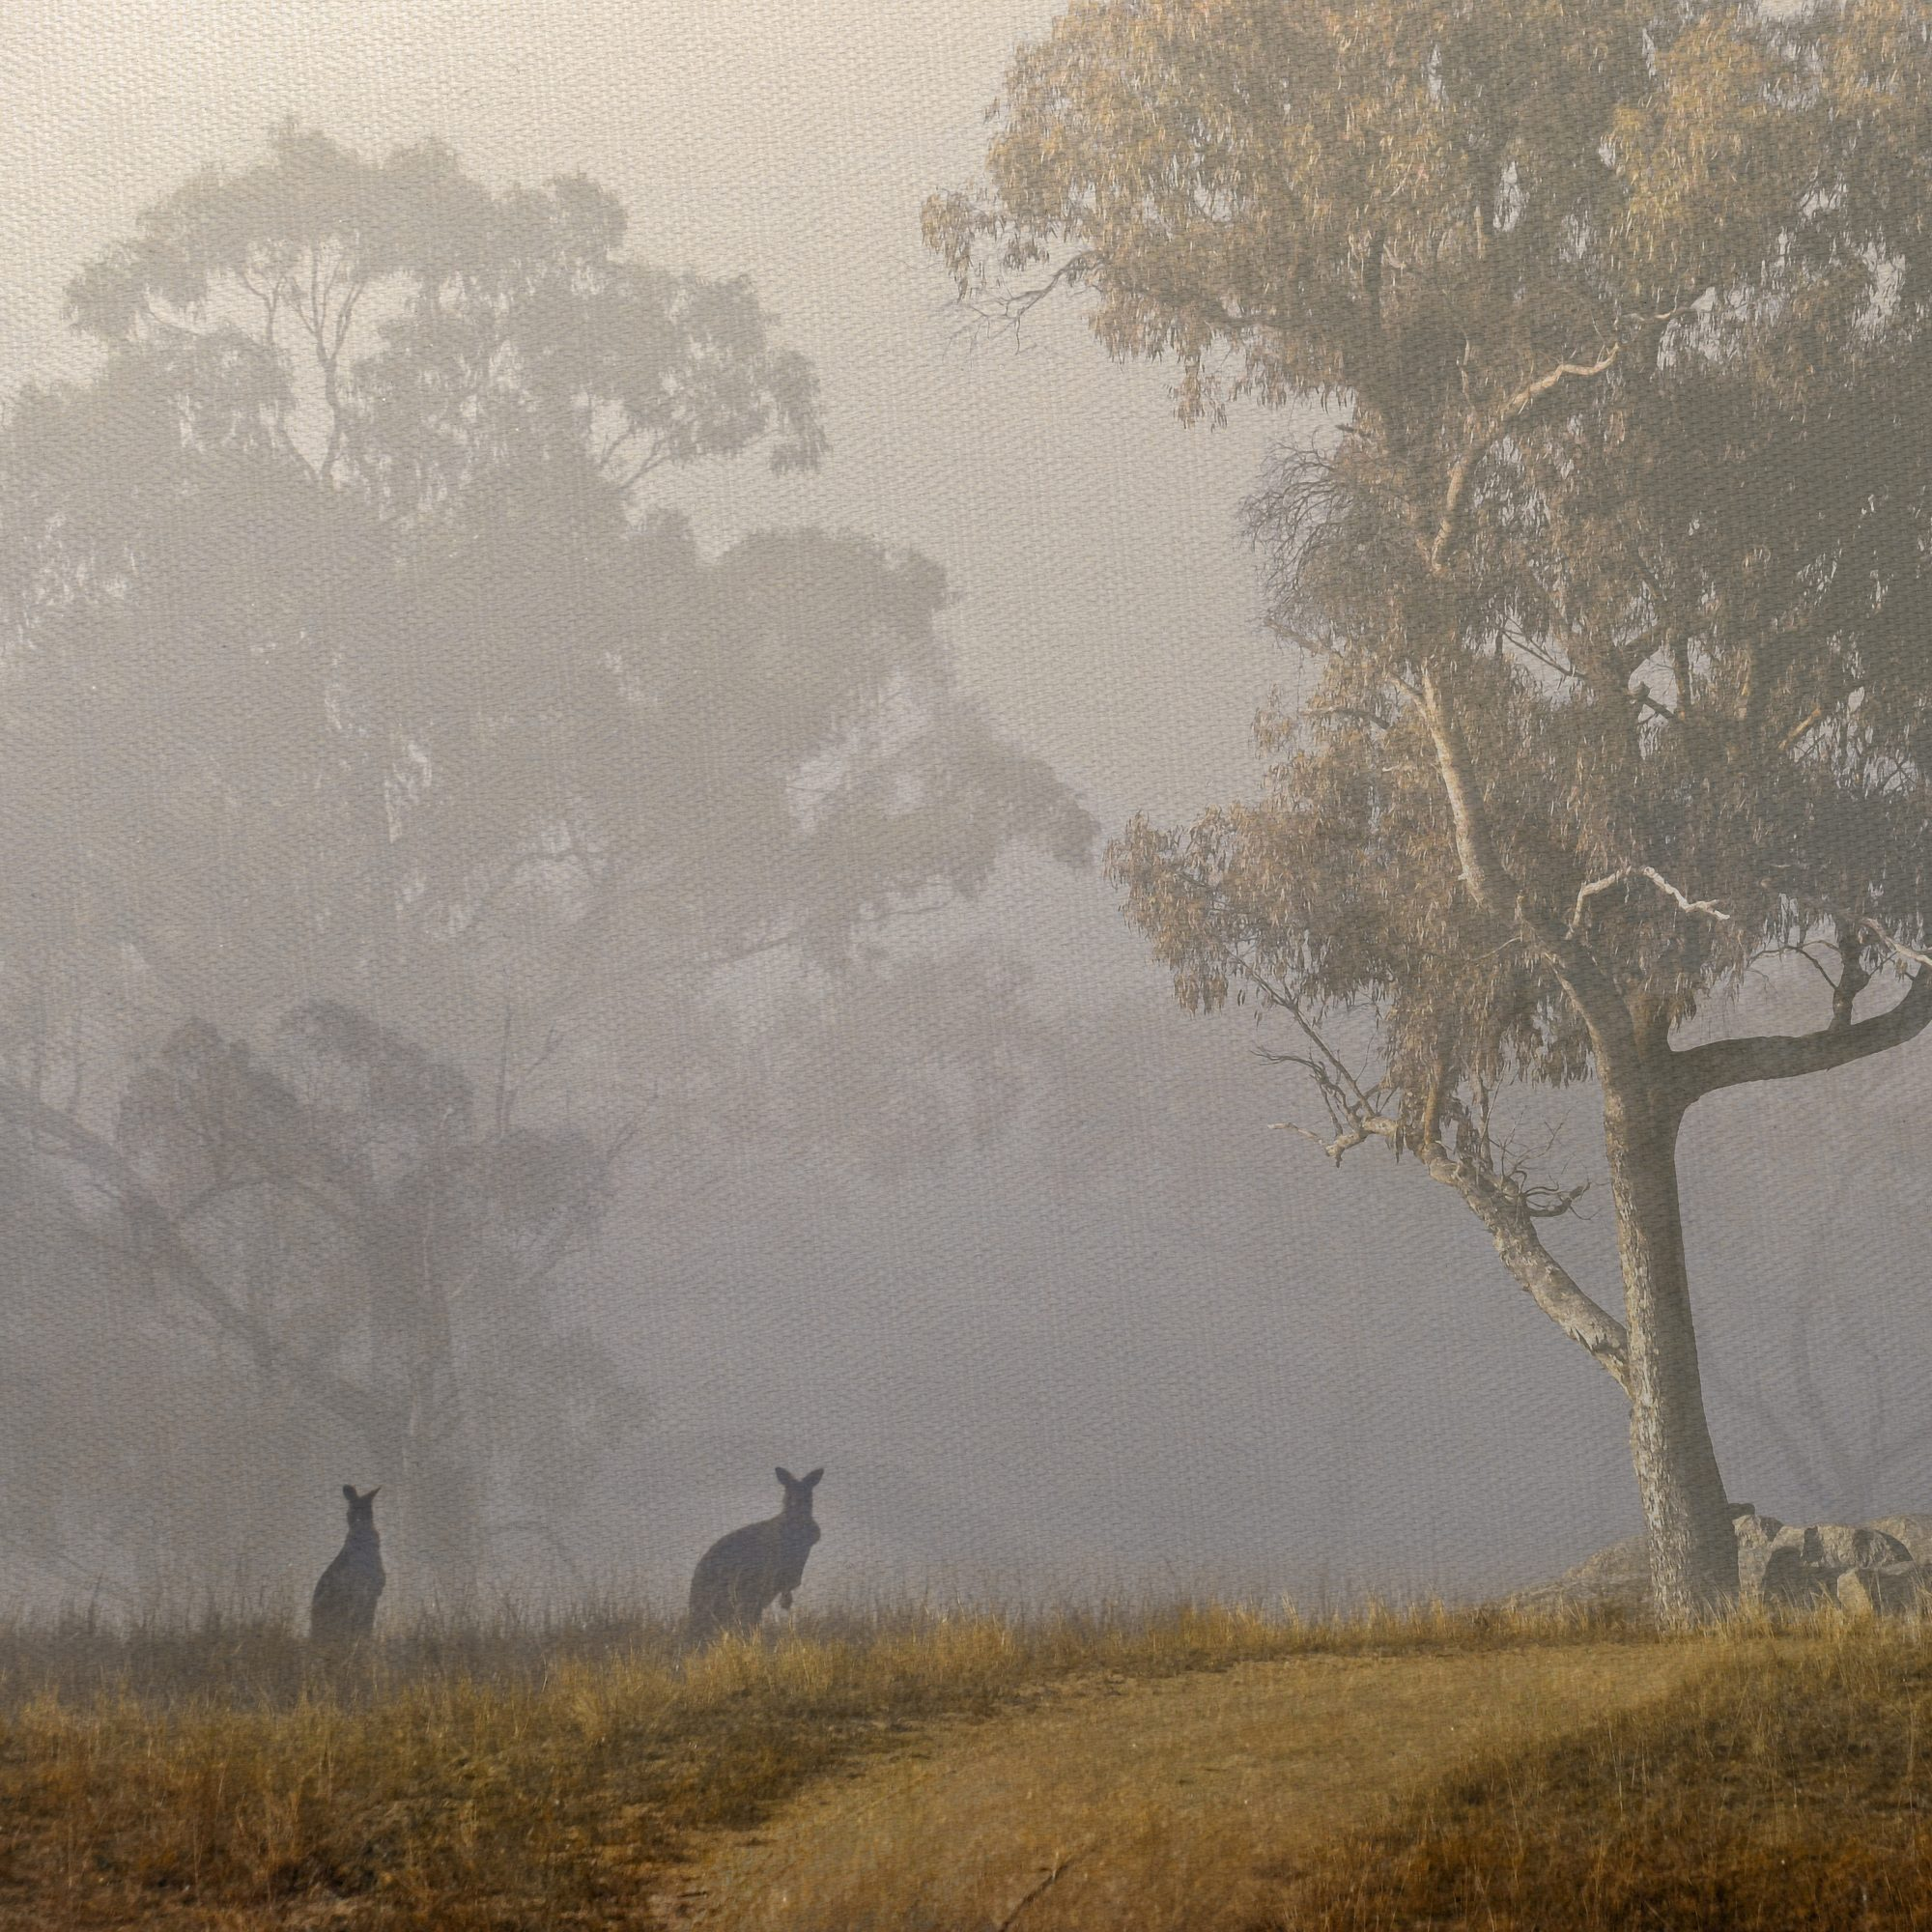 pcf1296sq-kangaroos-in-the-mist-etsy